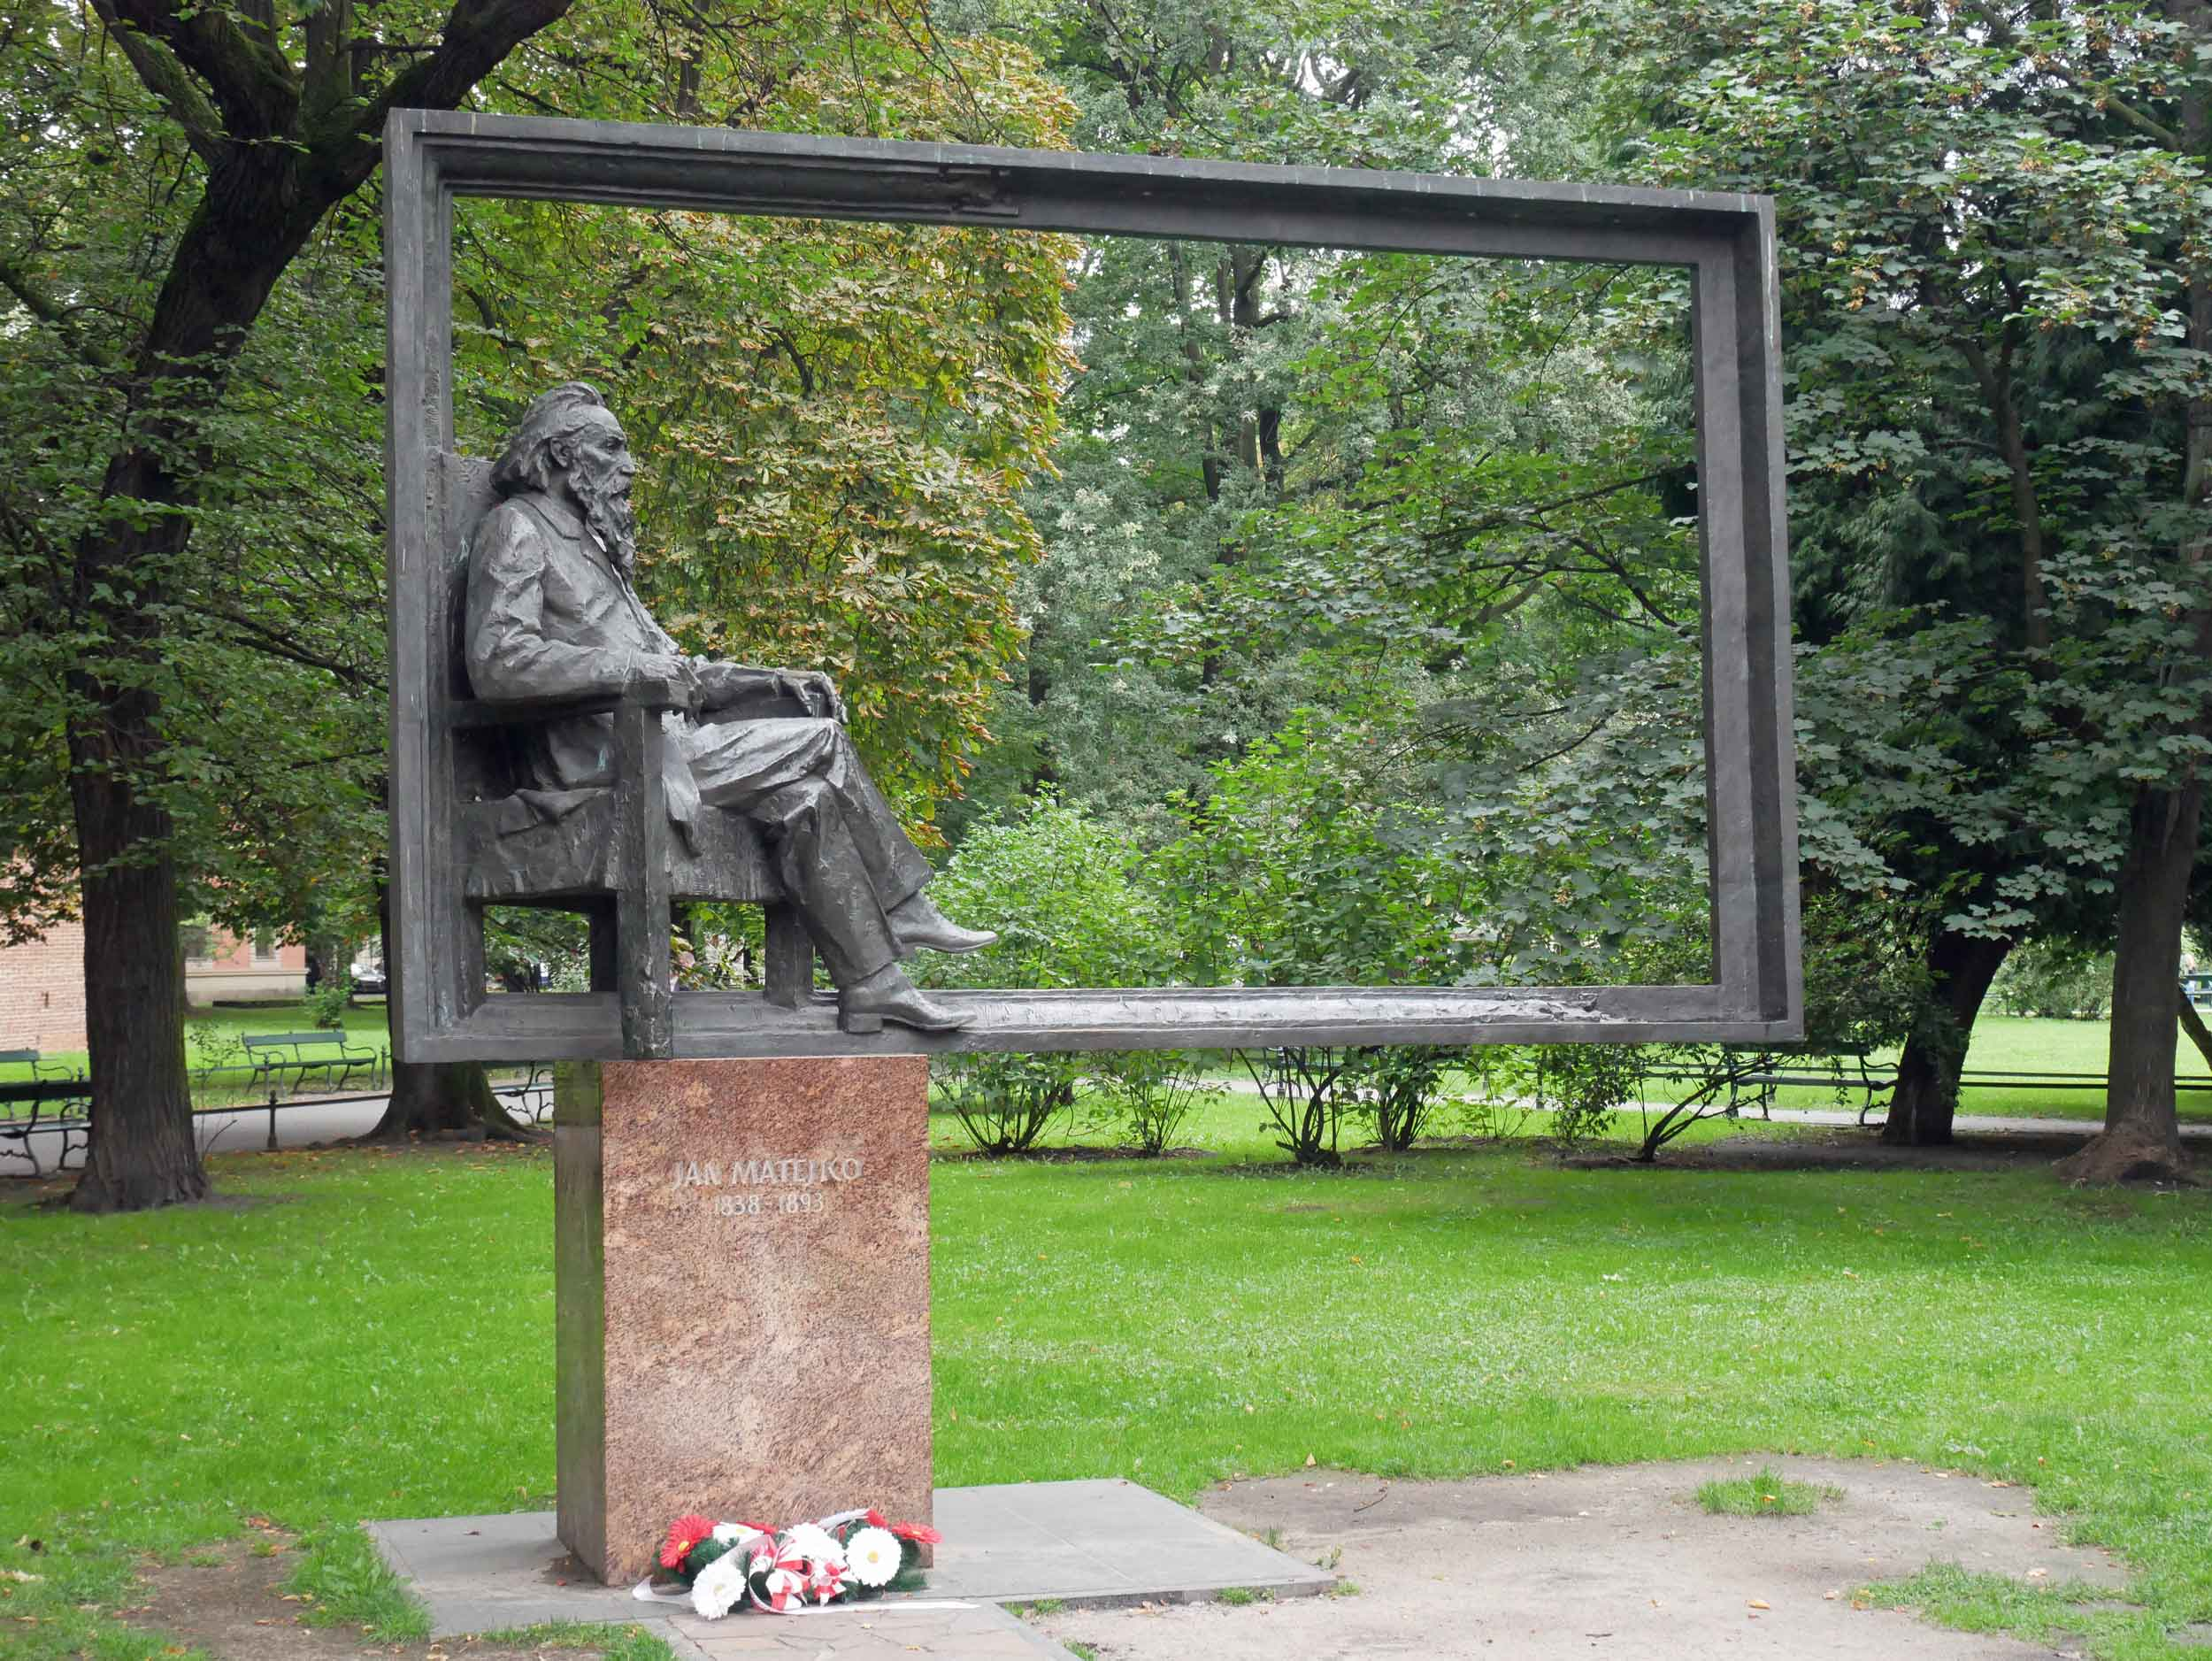 Statue of the famed polish artist Jan Matejko known best for his paintings of notable Polish political and military events.